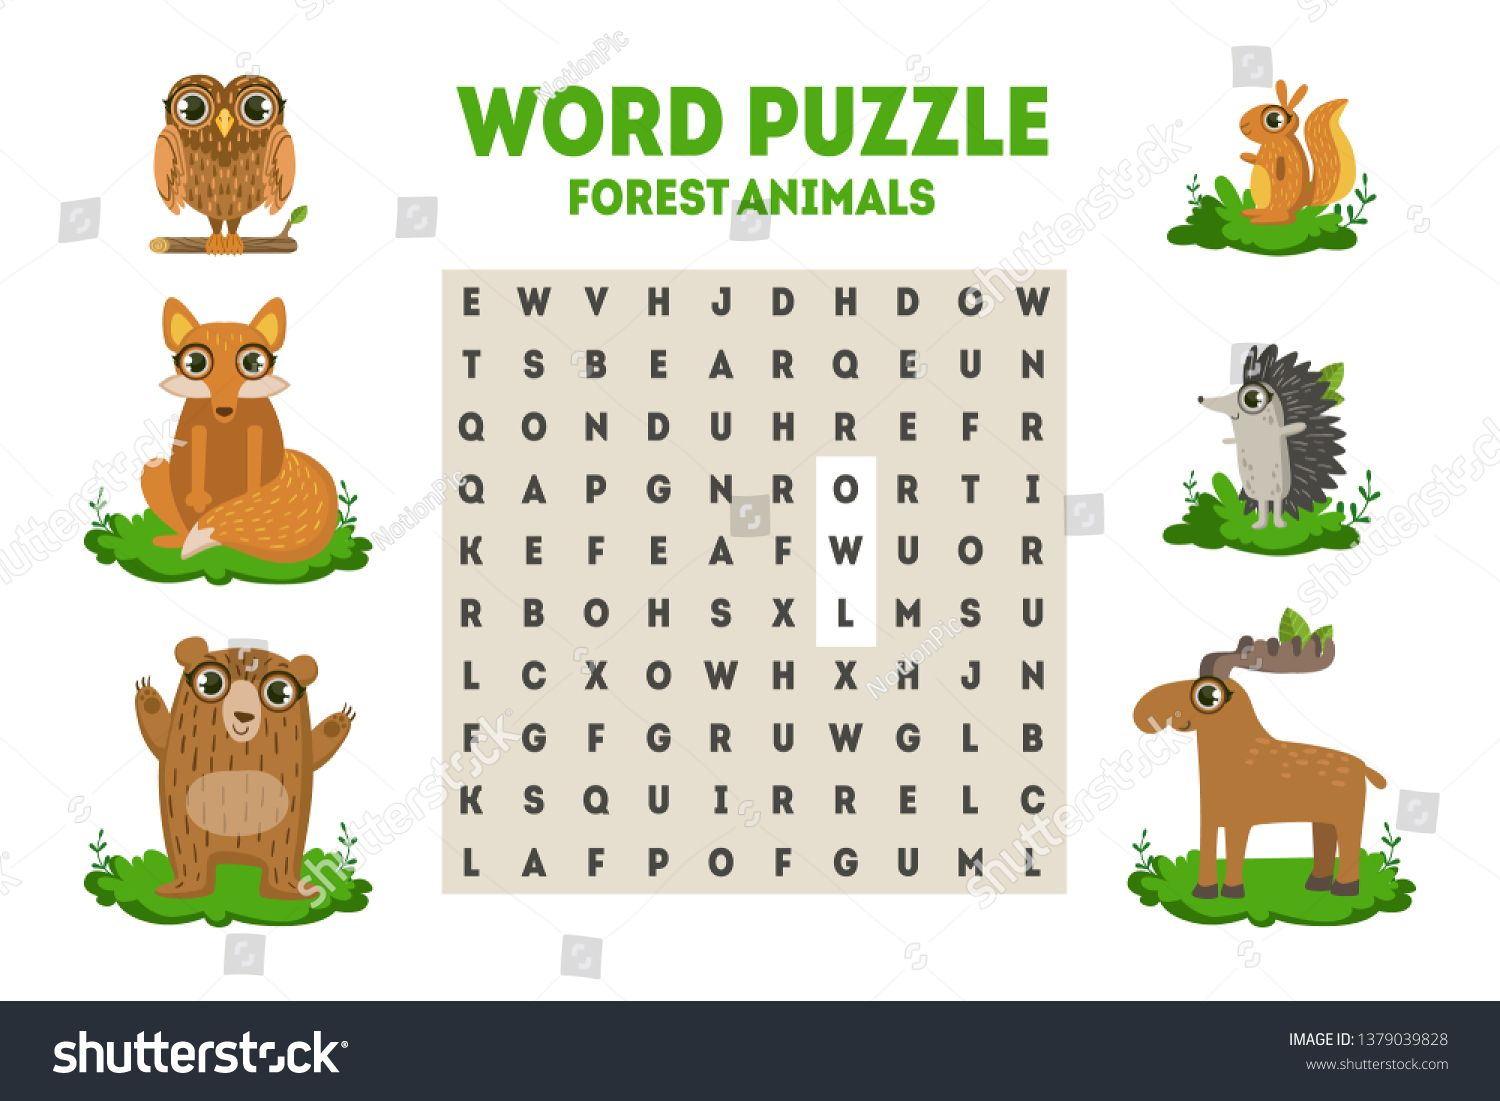 Word Search Puzzle With Forest Animals Educational Game For Kids Vector Illustration Ad Spon Fores Forest Animals Educational Games For Kids Kids Vector